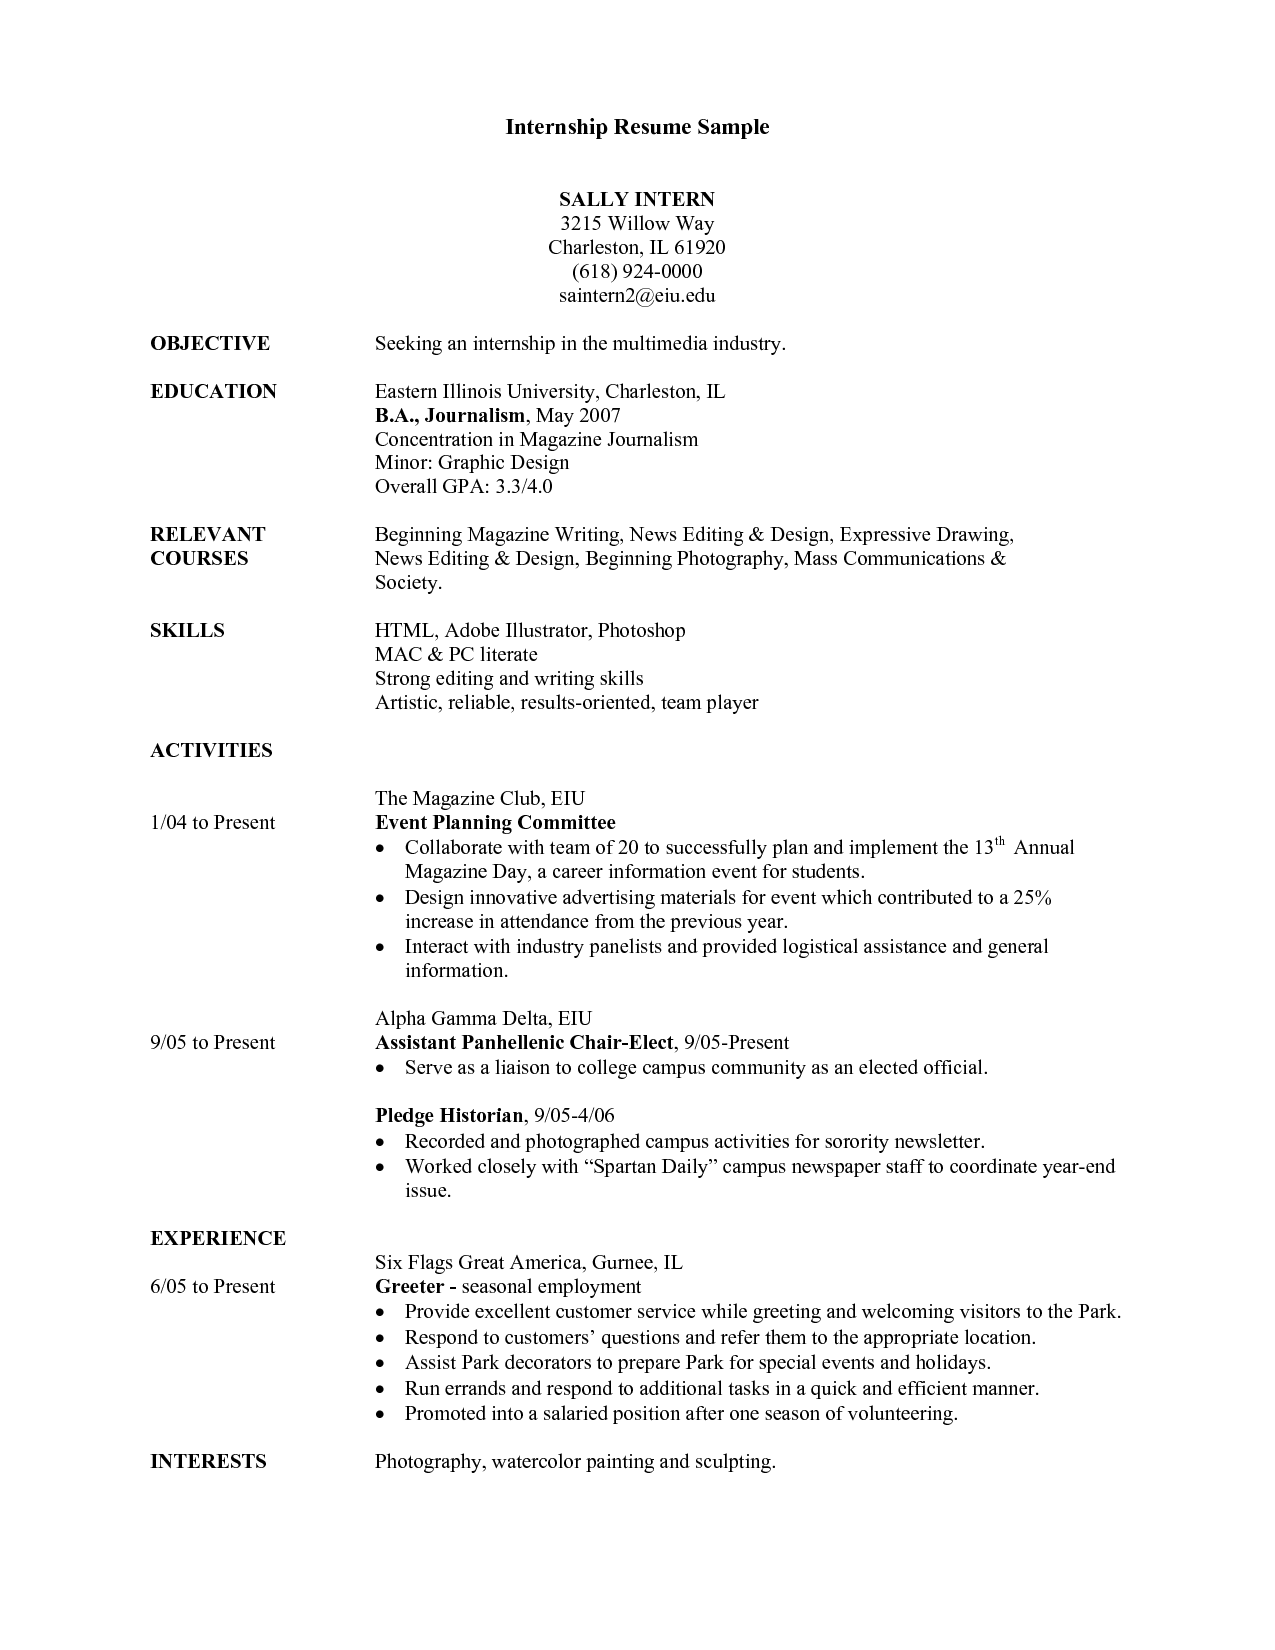 Undergraduate Resume Sample Pdf College Student Resume For Internship Task List Templates